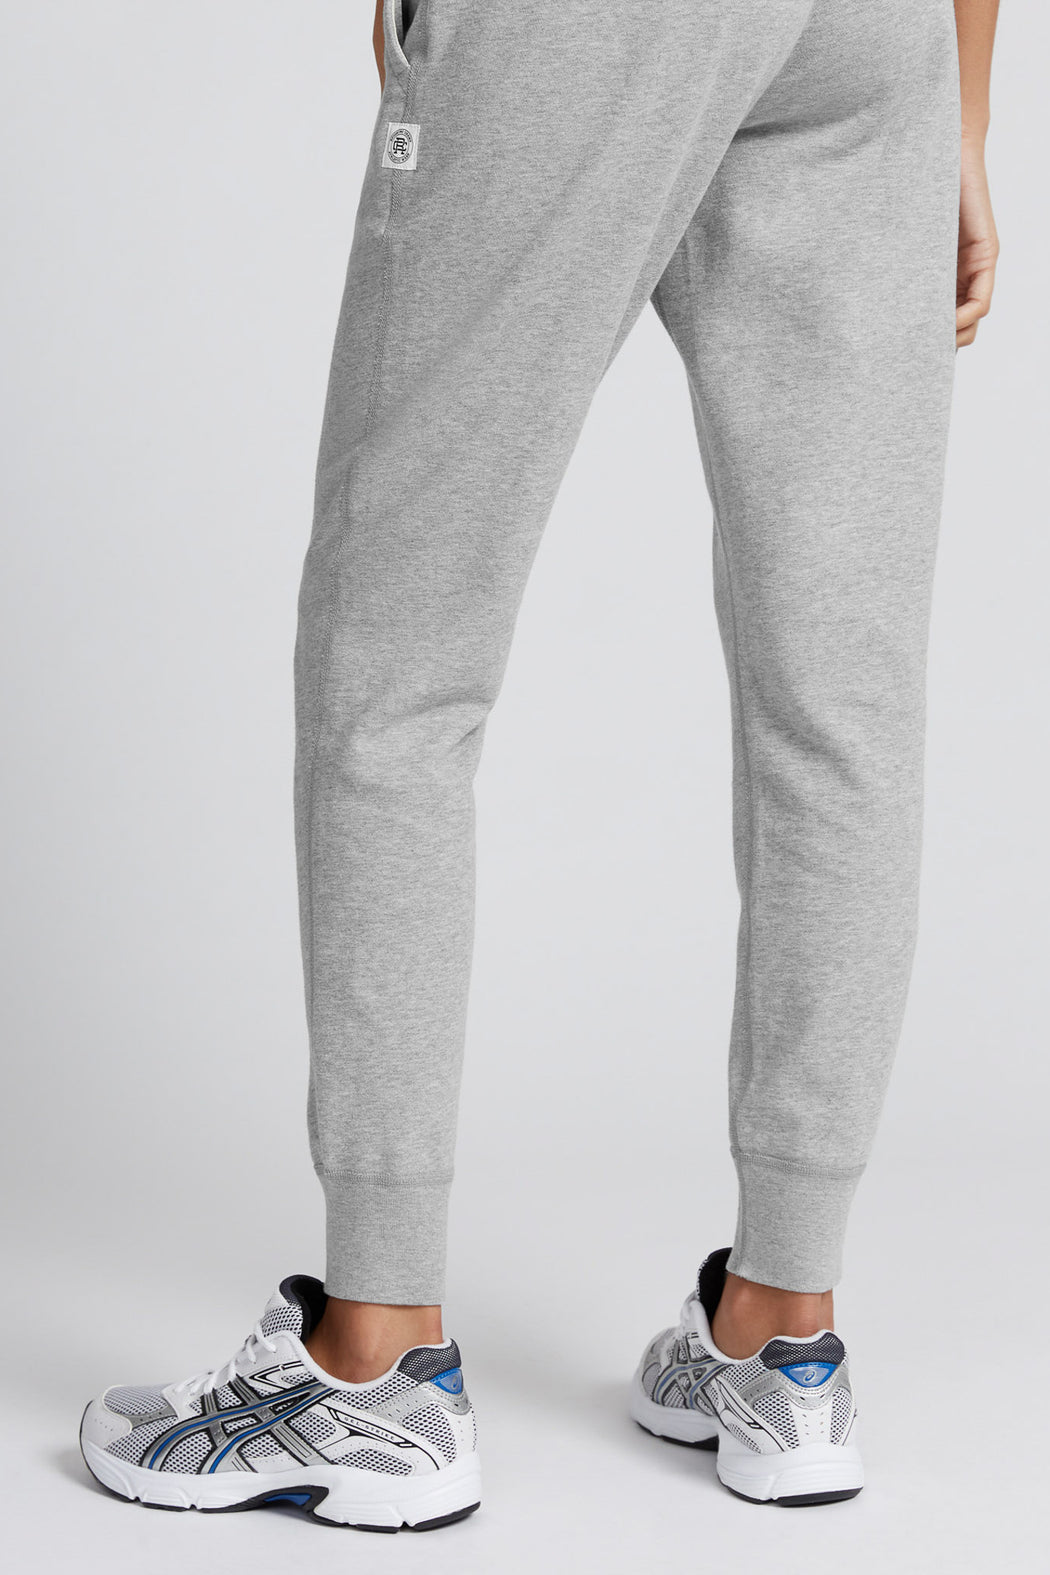 Reigning Champ Lightweight Slim Sweatpant in Heather Grey